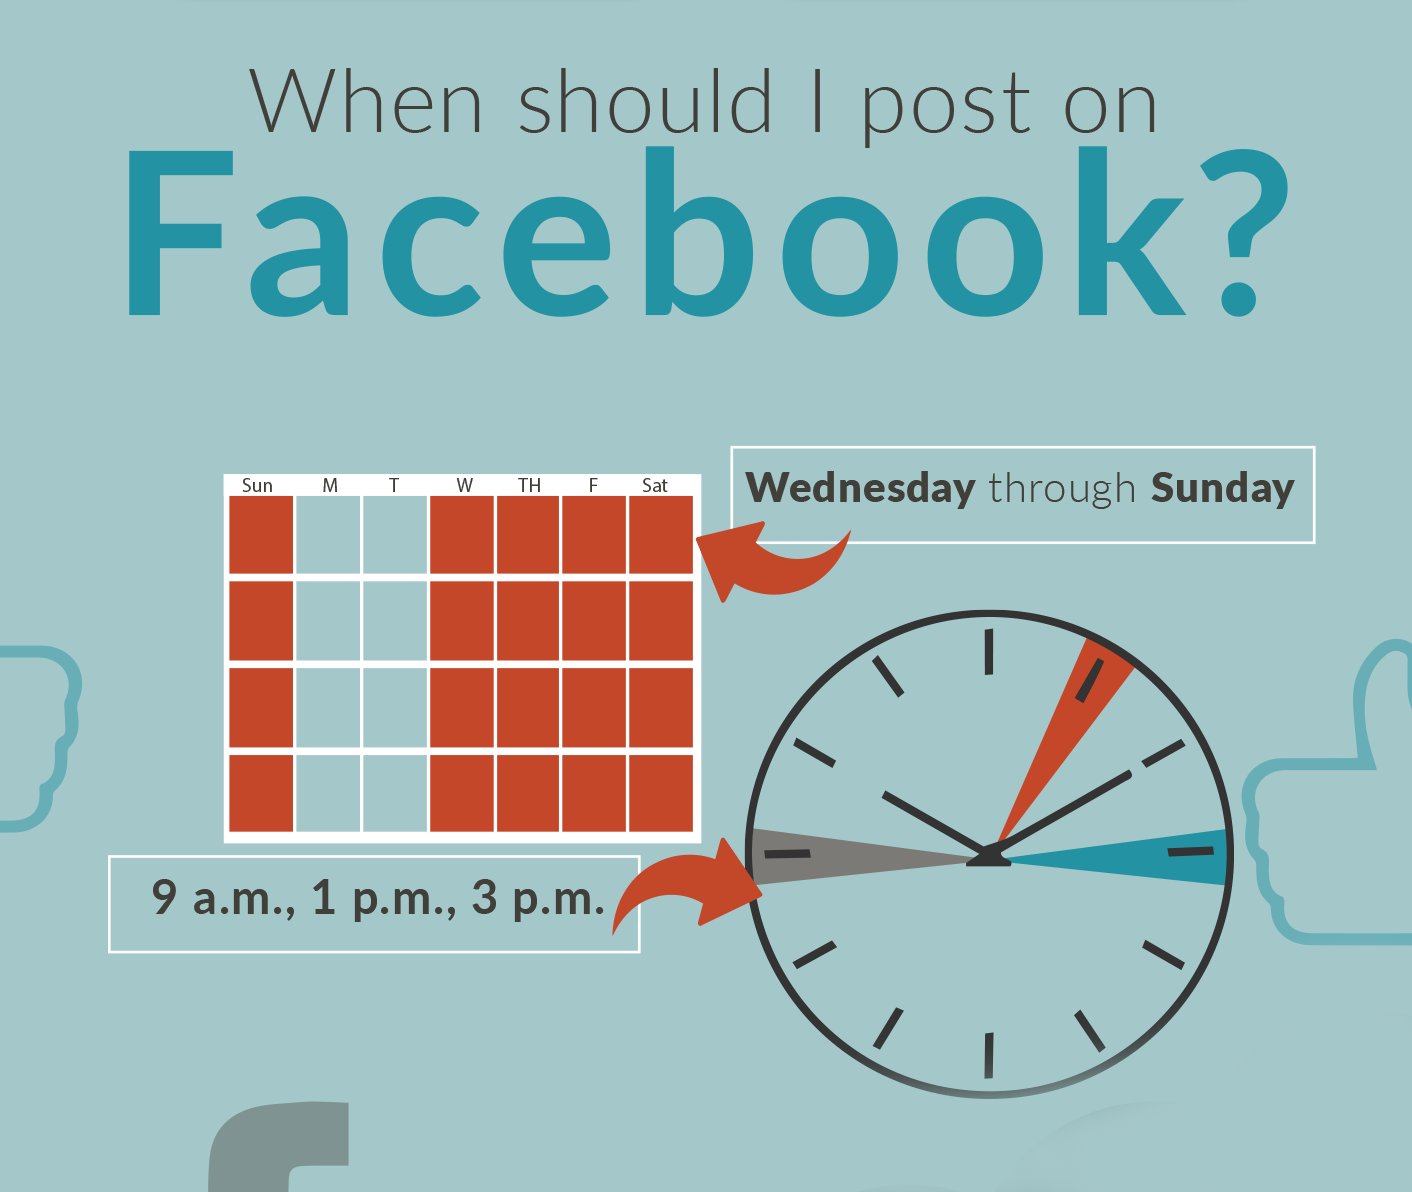 Jones-complete-social-media-guide-facebook-whentopost